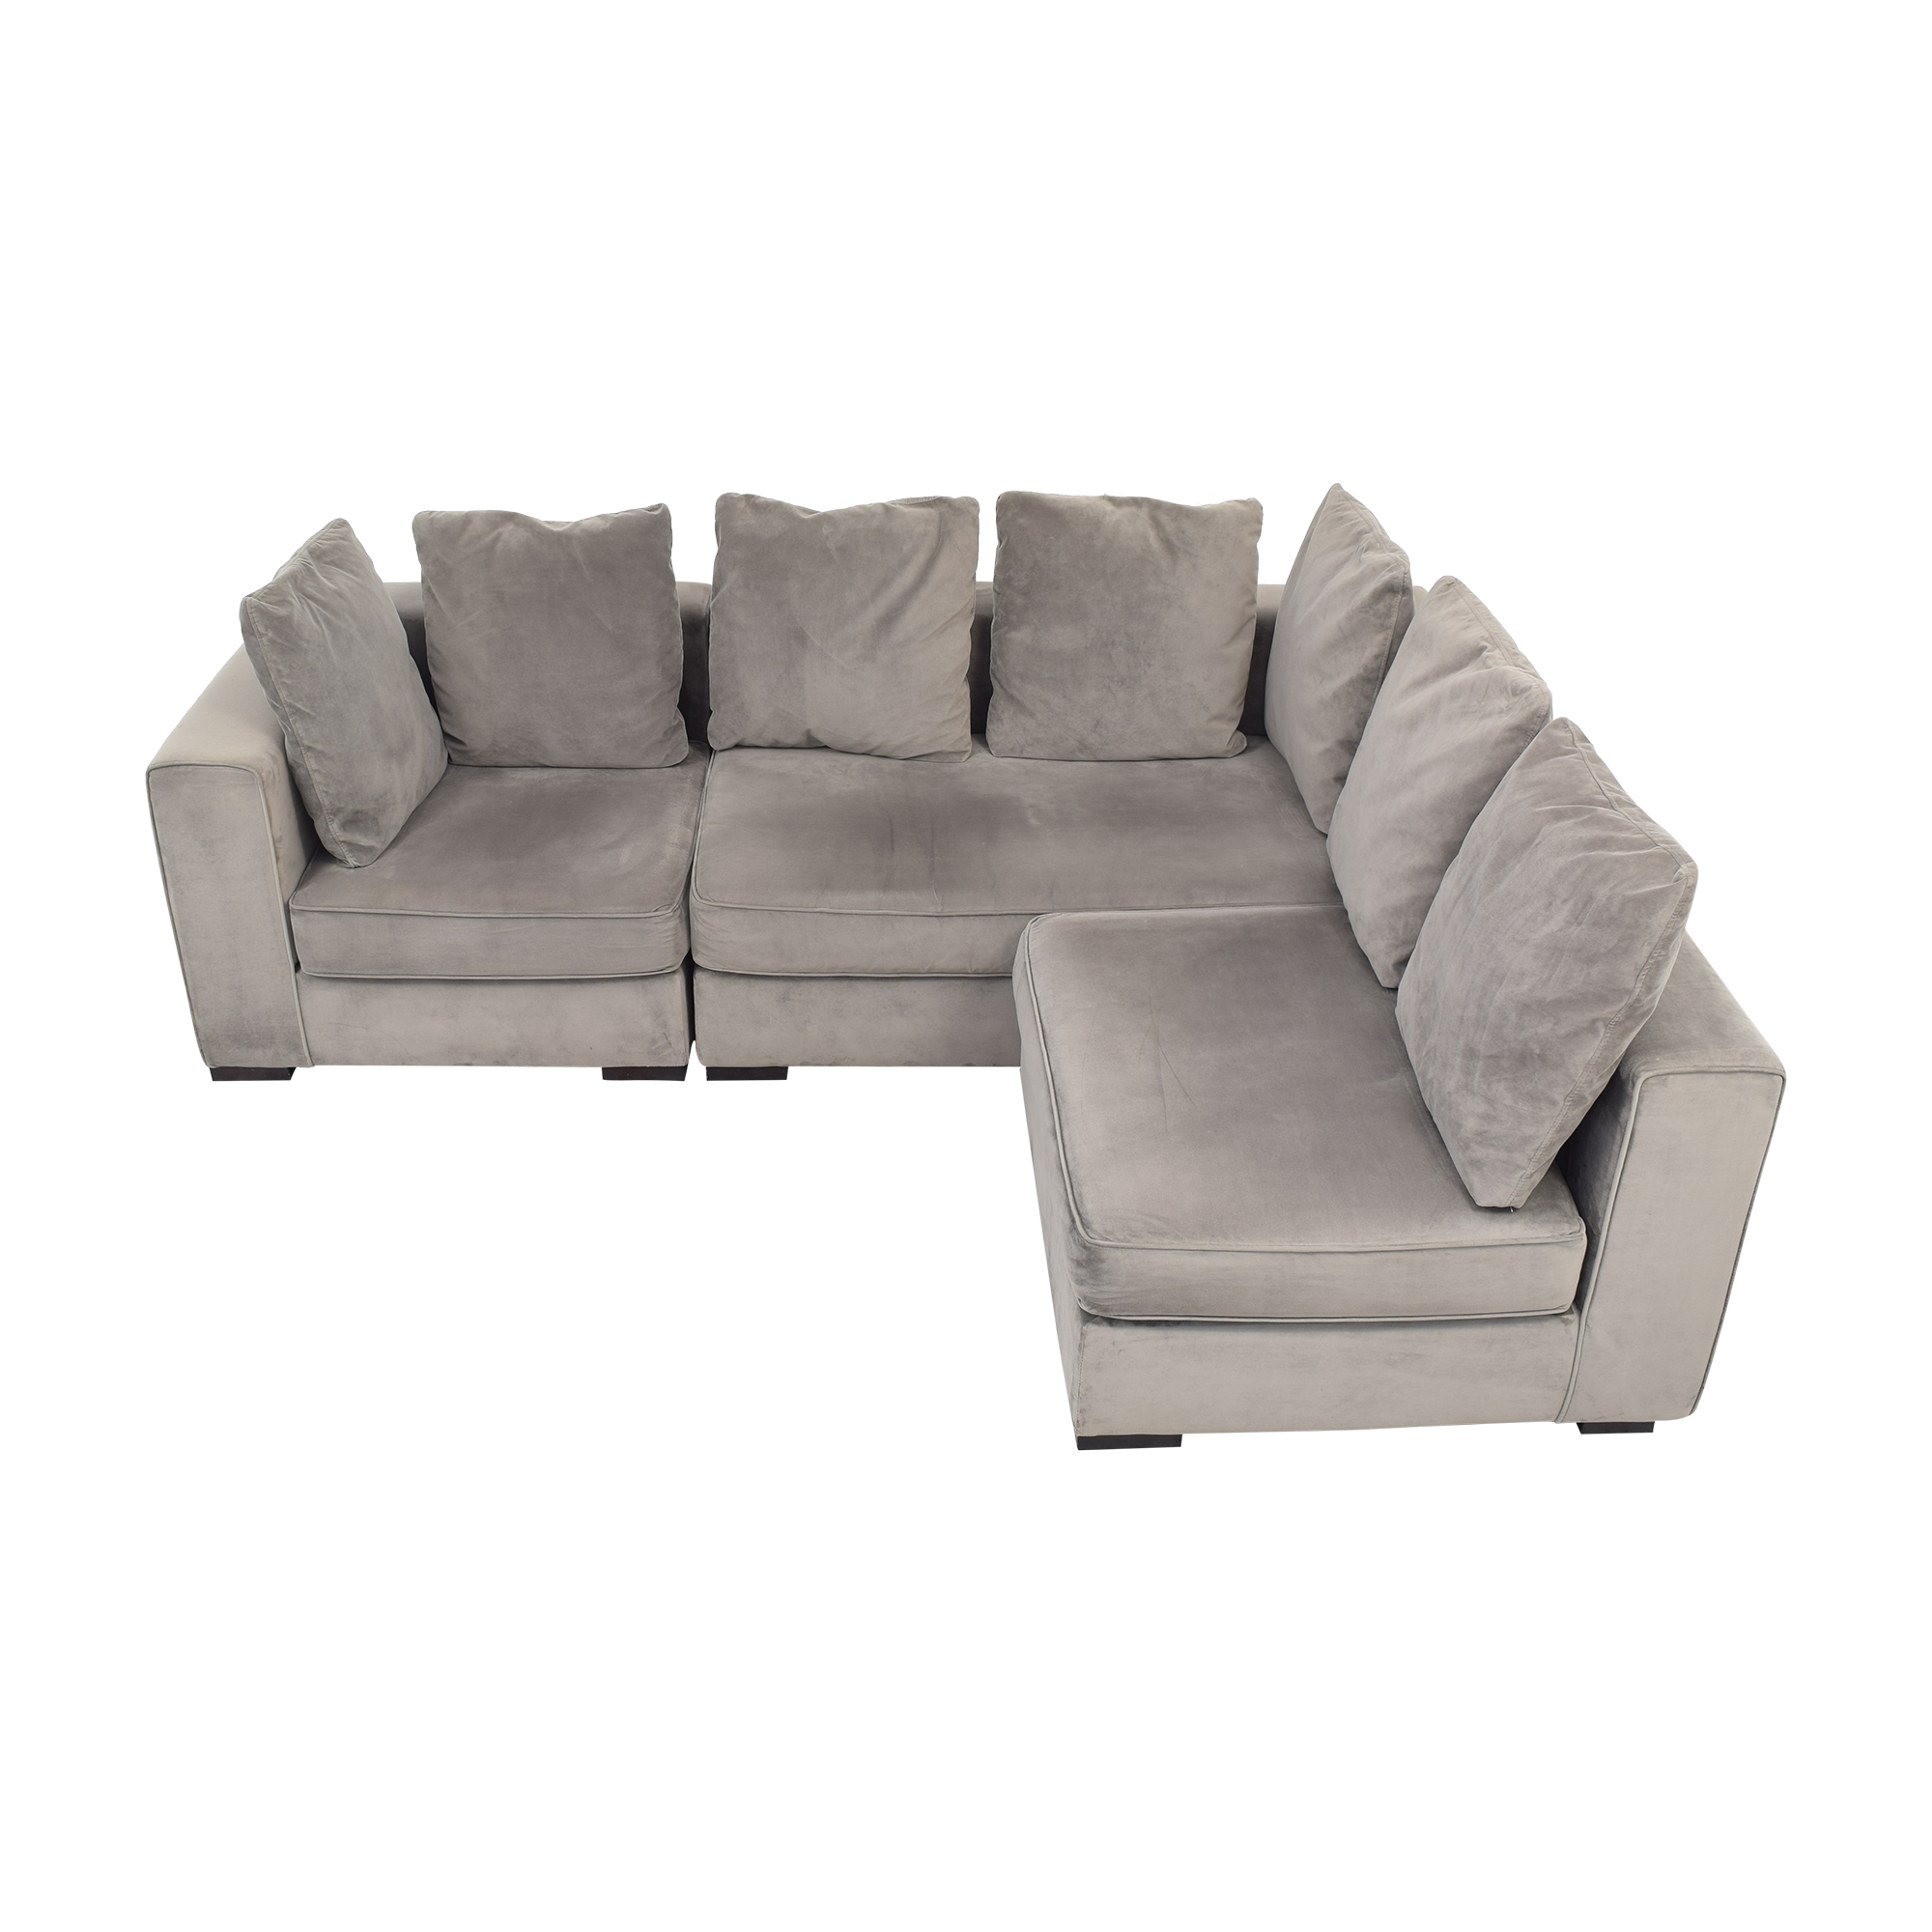 West Elm West Elm 3-Piece Sectional with Ottoman on sale